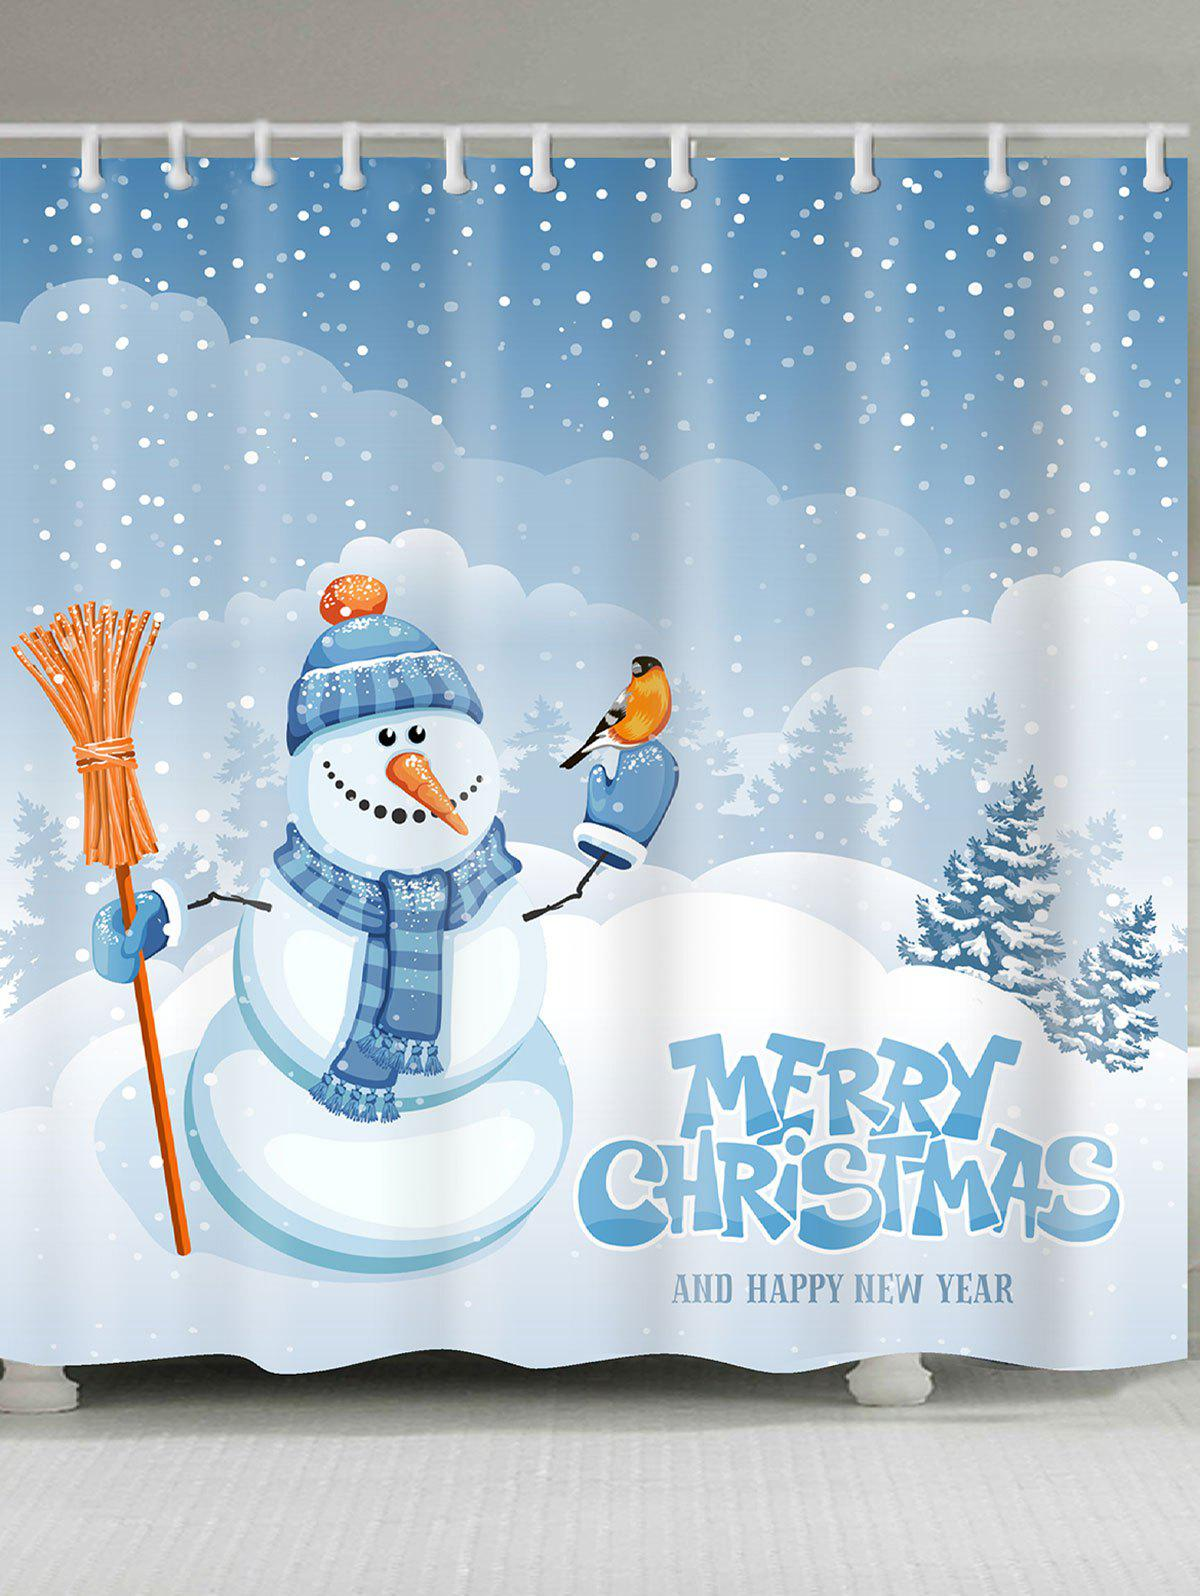 Snowy Christmas Snowman Pattern Shower CurtainHOME<br><br>Size: W59 INCH * L71 INCH; Color: BLUE + WHITE; Products Type: Shower Curtains; Materials: Polyester; Pattern: Snow,Snowman; Style: Festival; Number of Hook Holes: W59 inch * L71 inch:10, W71 inch * L71 inch:12, W71 inch * L79 inch:12; Package Contents: 1 x Shower Curtain 1 x Hooks (Set);